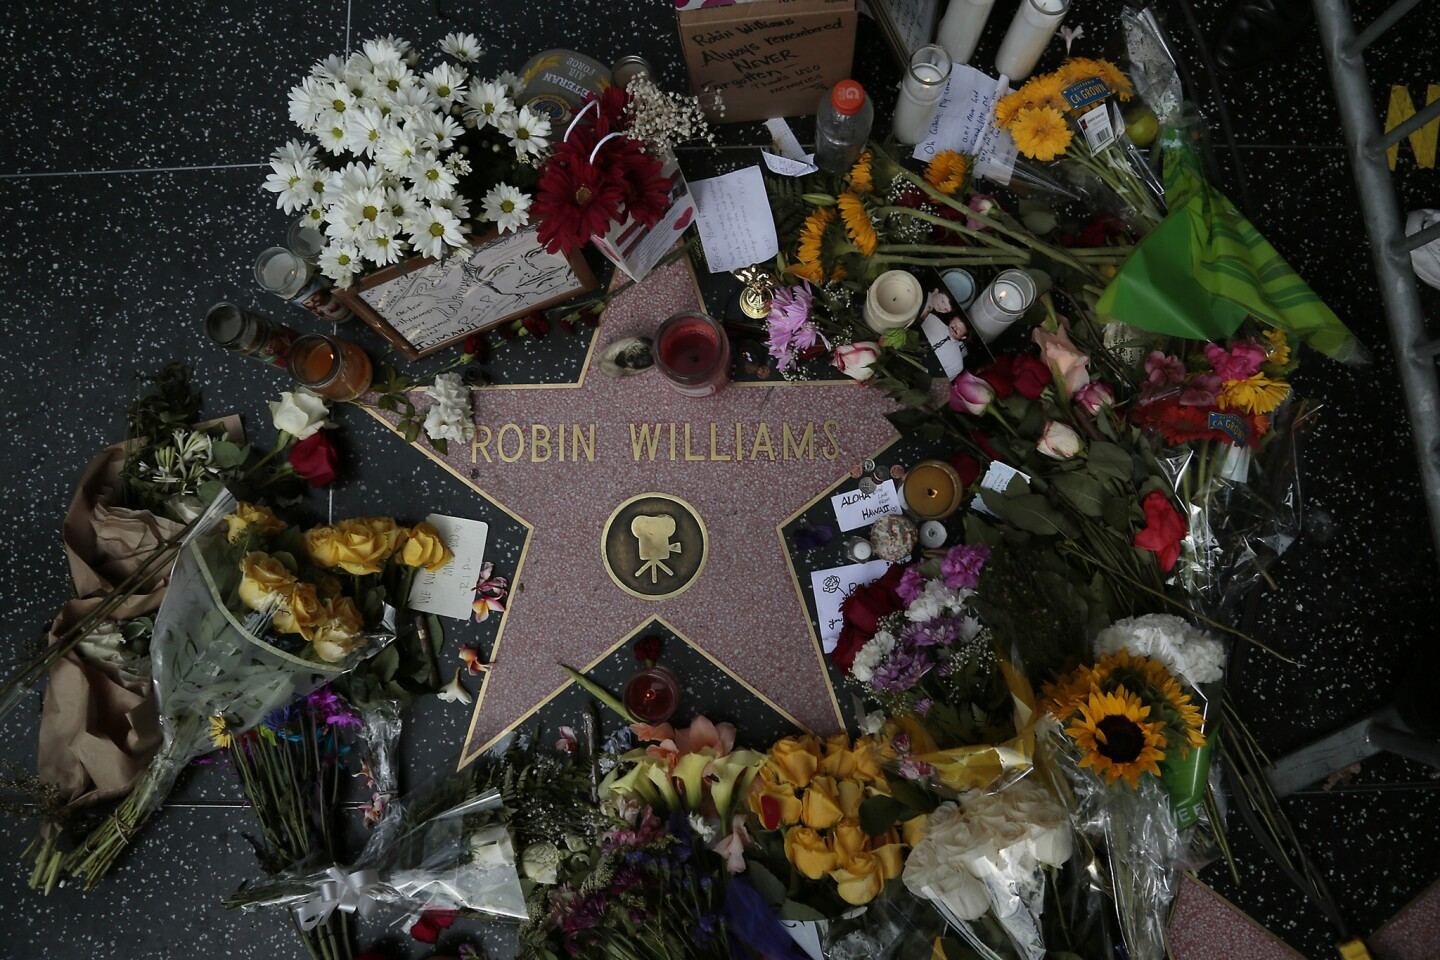 Flowers and memorabilia are piled on Robin Williams' Hollywood Walk of Fame star, a day after the actor was found dead from an apparent suicide.